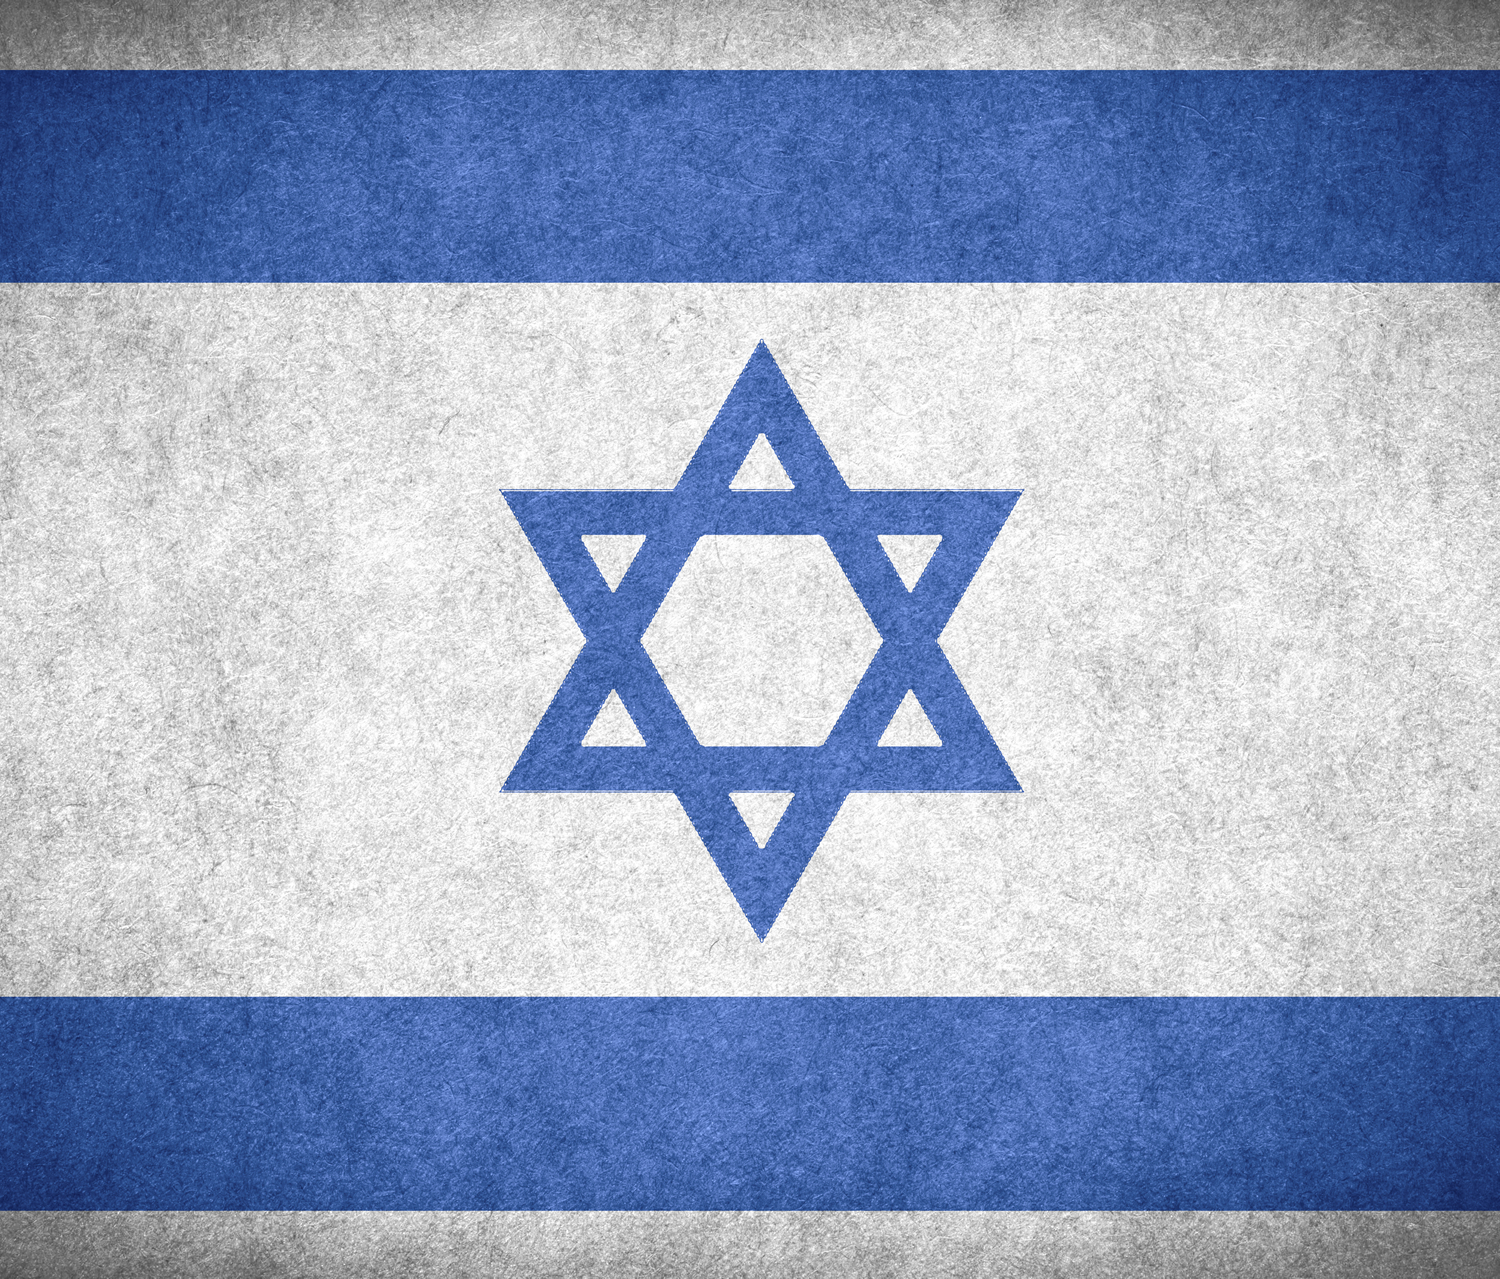 an analysis of the beginning of a new nation israel The movement that has encouraged the creation and support of the nation of israel reform a movement beginning in the nineteenth century that questioned and modernized judaism a liberal branch of judaism.